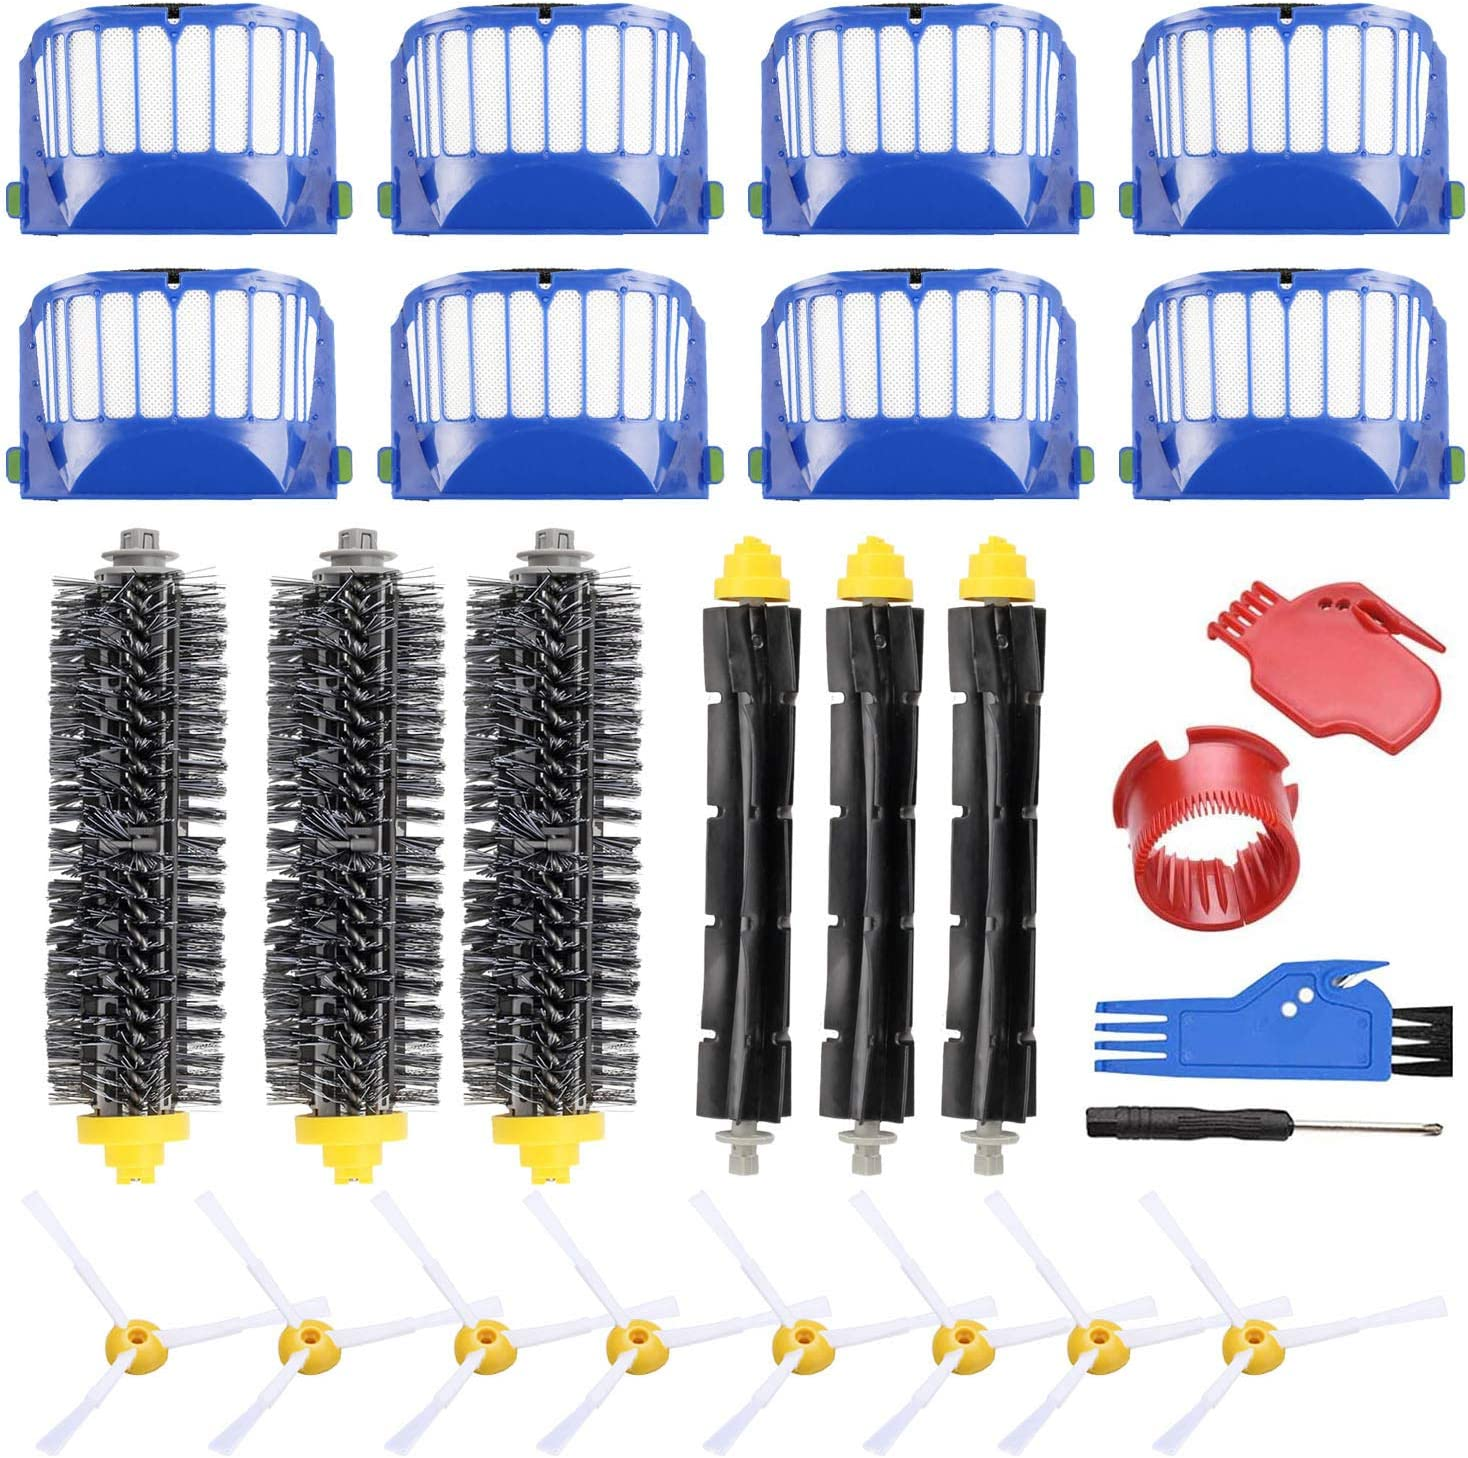 PIGUOAT Replacement Accessories Kit for iRobot Roomba 600 Series & 500 Series Parts, Replacement Brush Parts Accessories for Roomba 618 620 650 651 660 680 690 536 551 552 564 585 589 595 Vac Parts